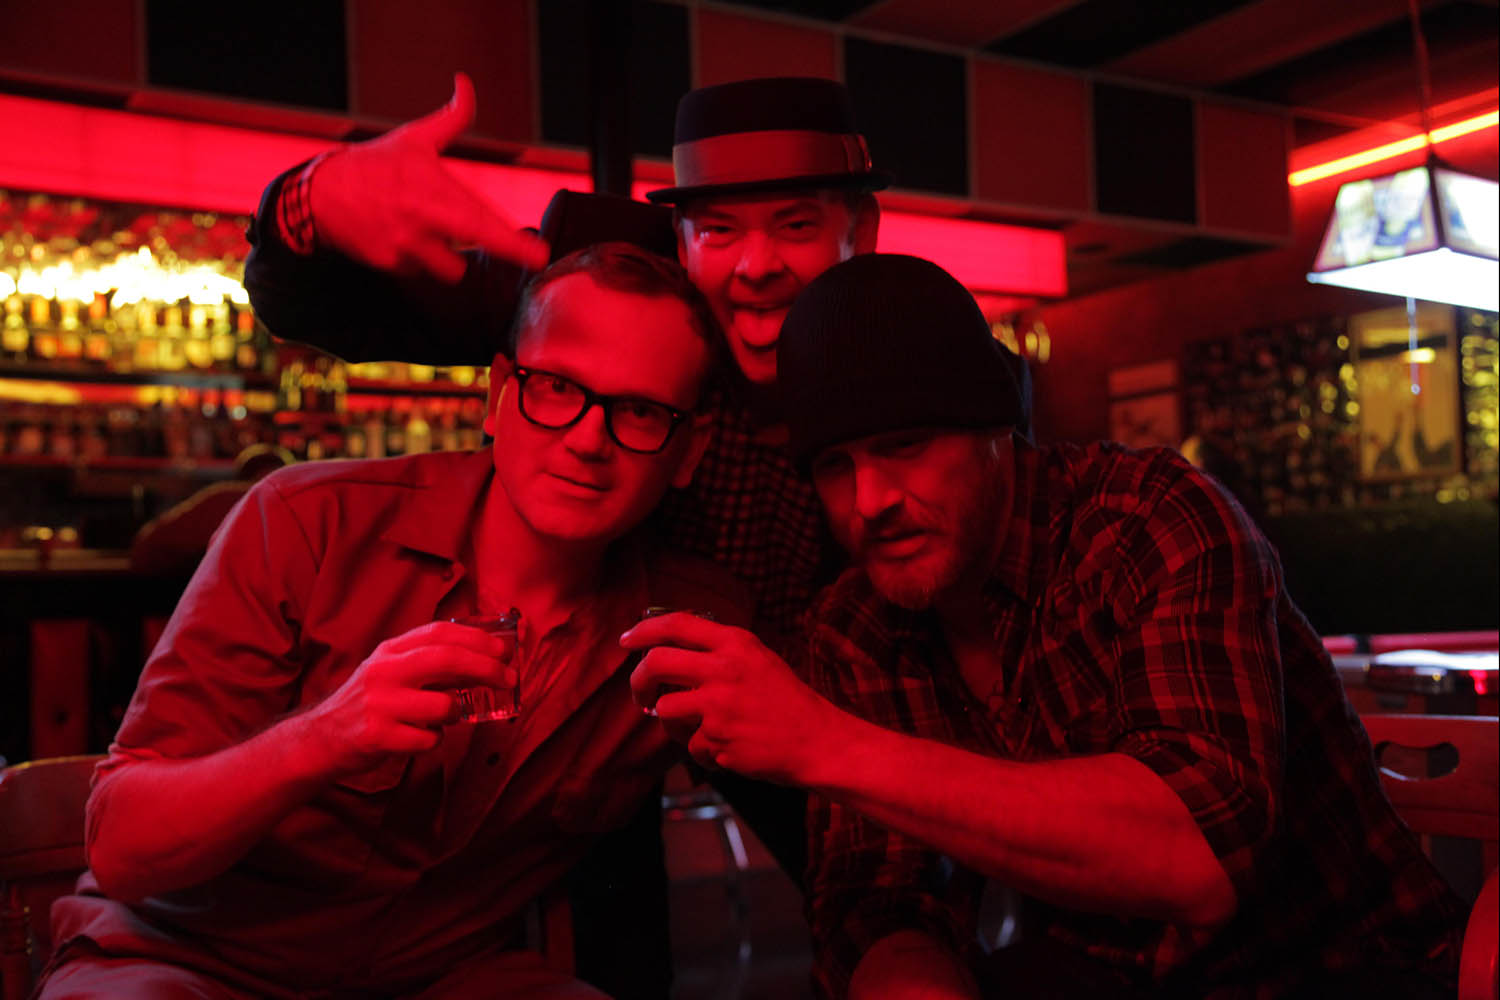 SXSW 2013: Cheap Thrills and Short Term 12